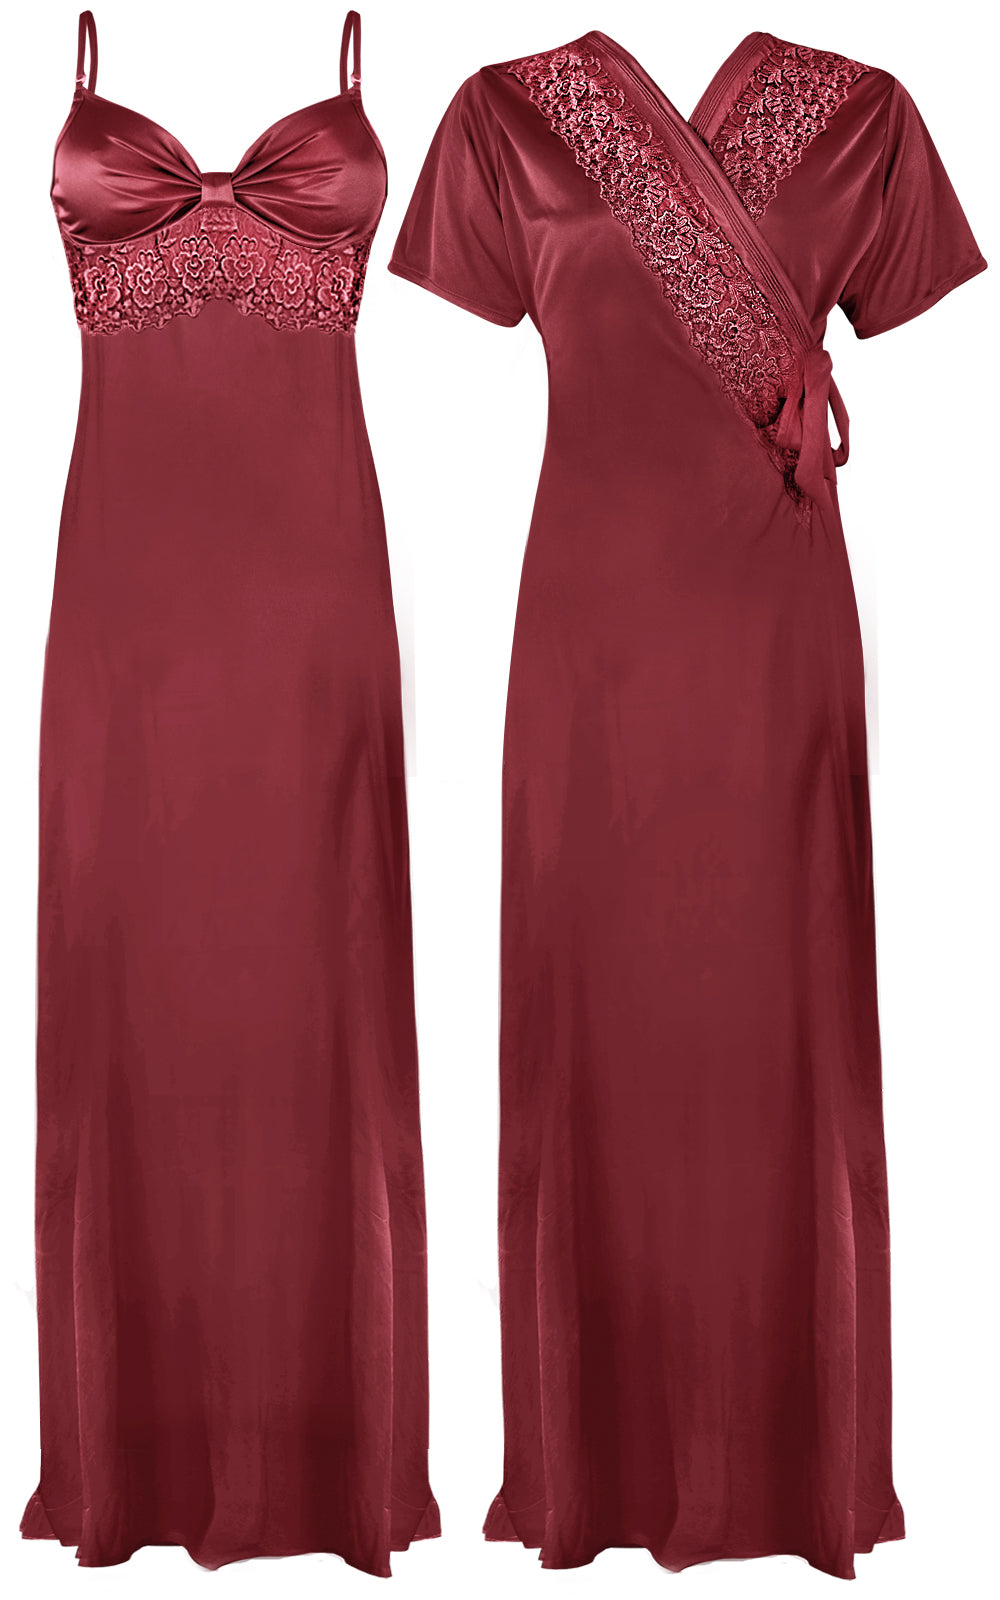 Colour: Rosewood 2 Pcs Strappy Lace Long Nighty With Robe Size: One Size